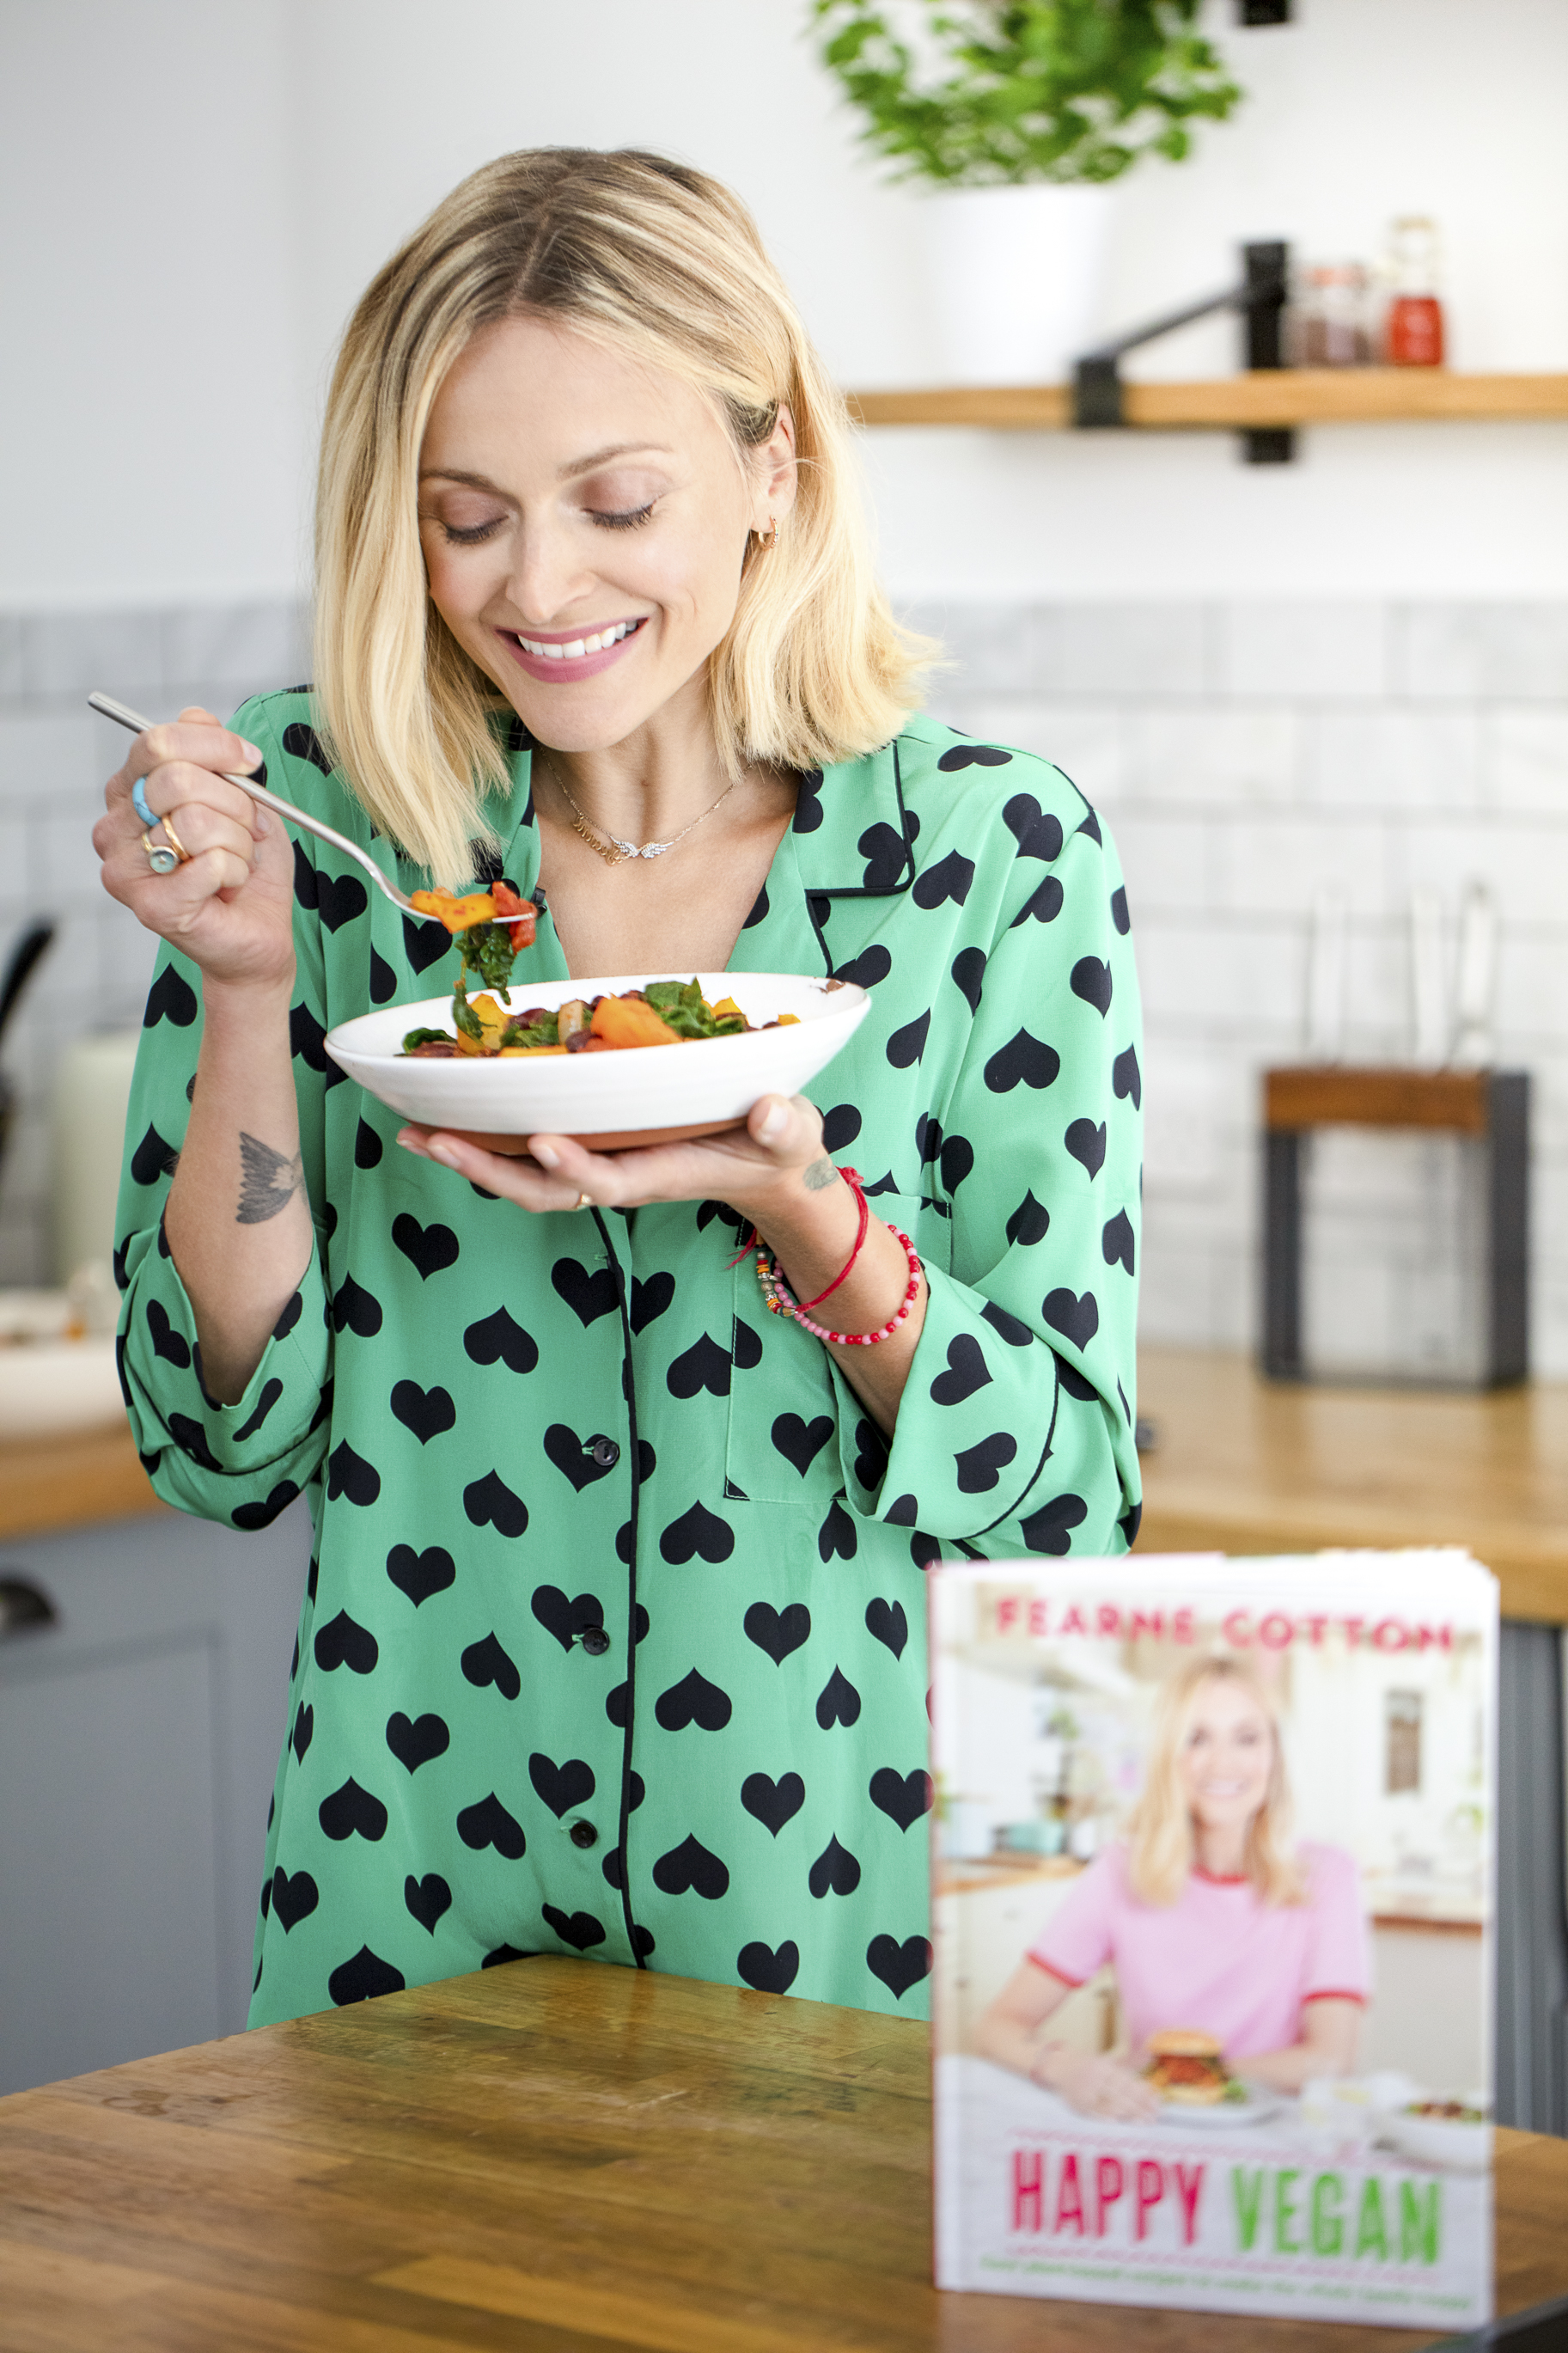 Fearne Cotton 'Happy Vegan' Shoot - London, 2019